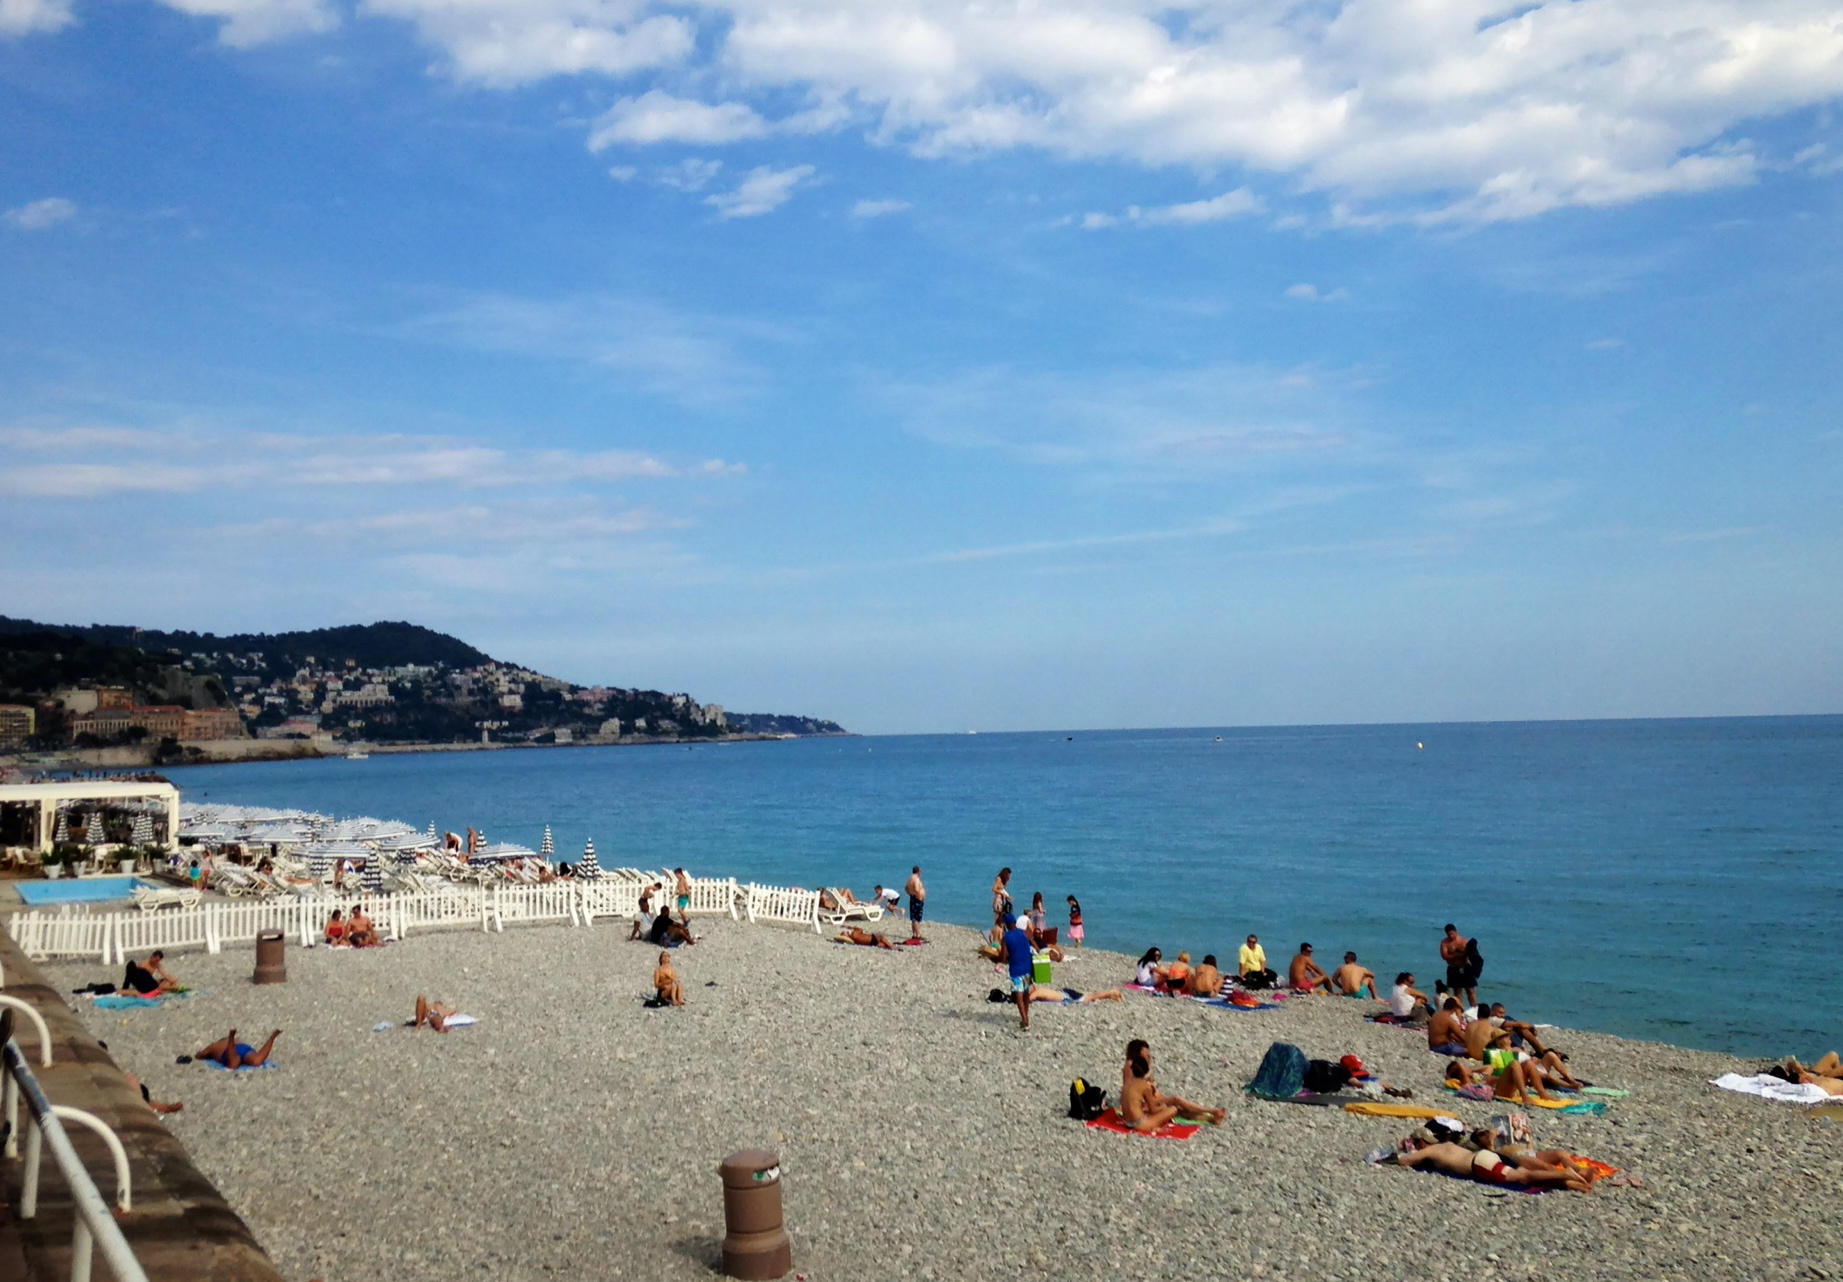 A view of the beach at Côte d'Azur